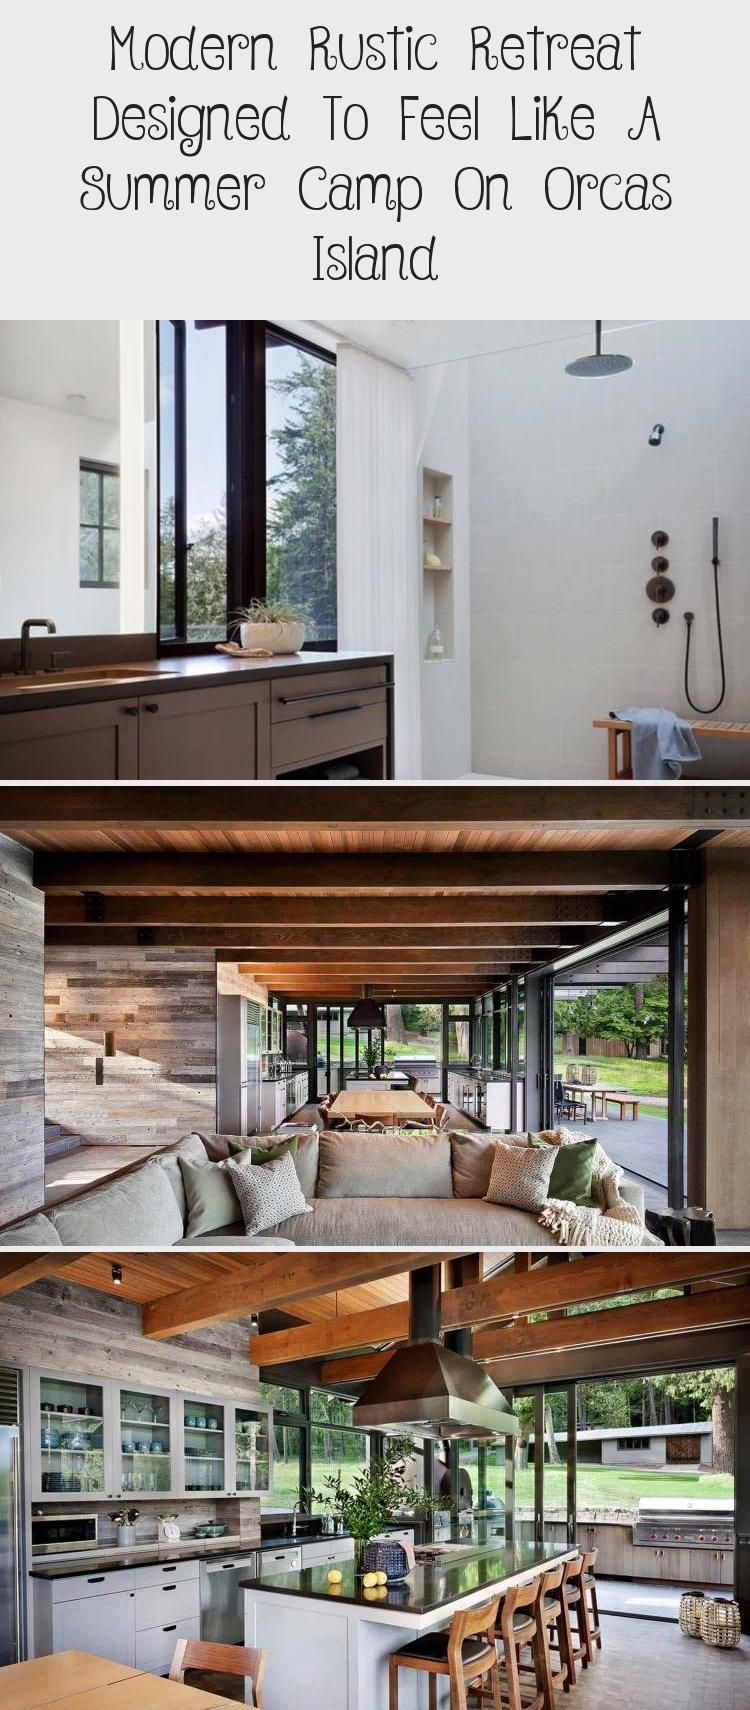 Modern Rustic Retreat Designed To Feel Like A Summer Camp On Orcas Island Rustichomedecorshabby Rustichomedecorapar Rustic Retreat Modern Rustic Rustic House